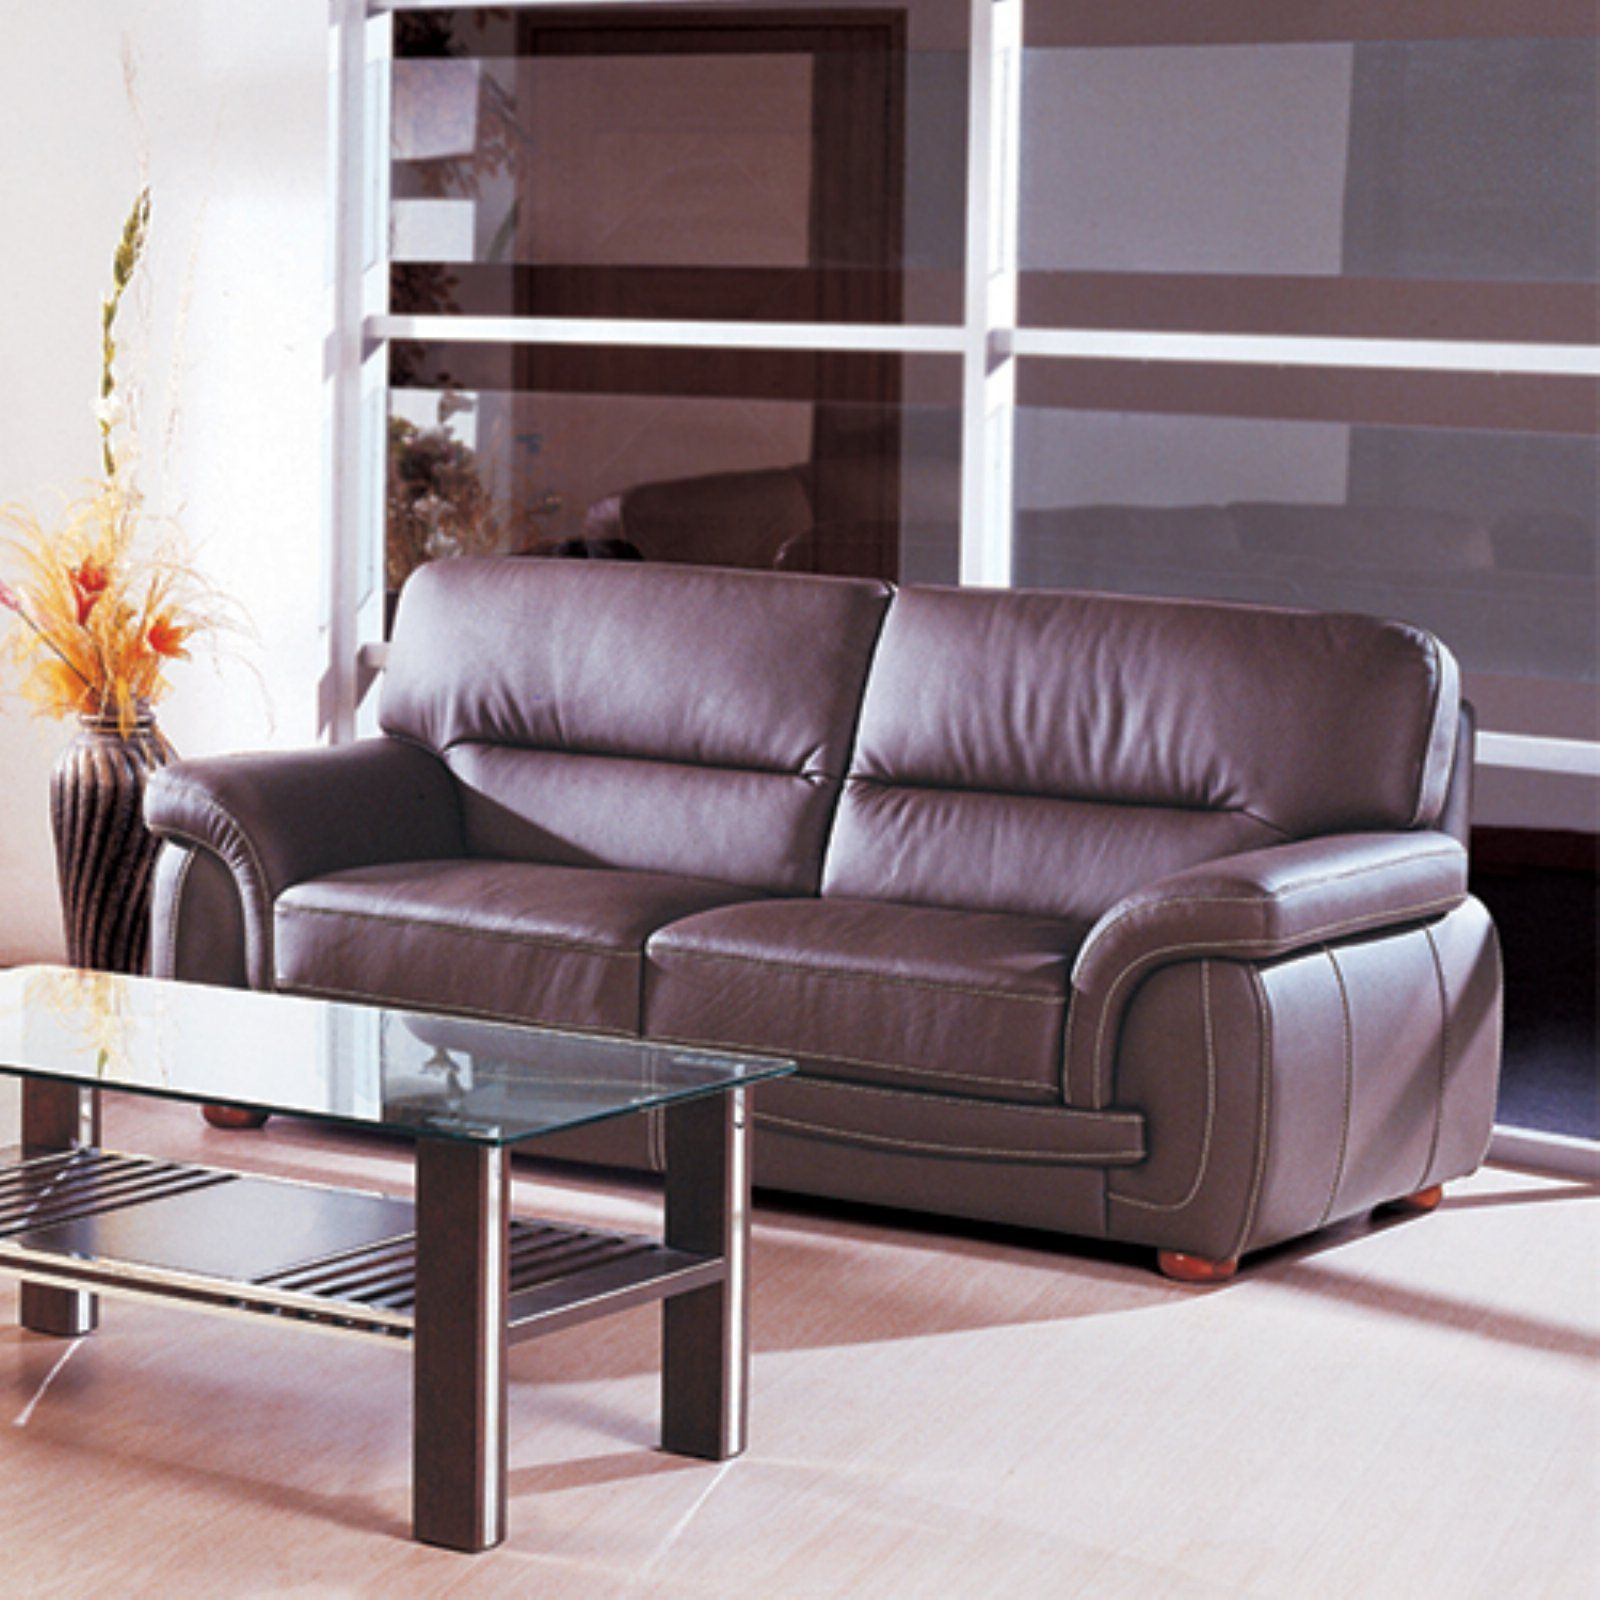 Best Sienna Leather Sofa Brown With Images Leather Sofa 400 x 300